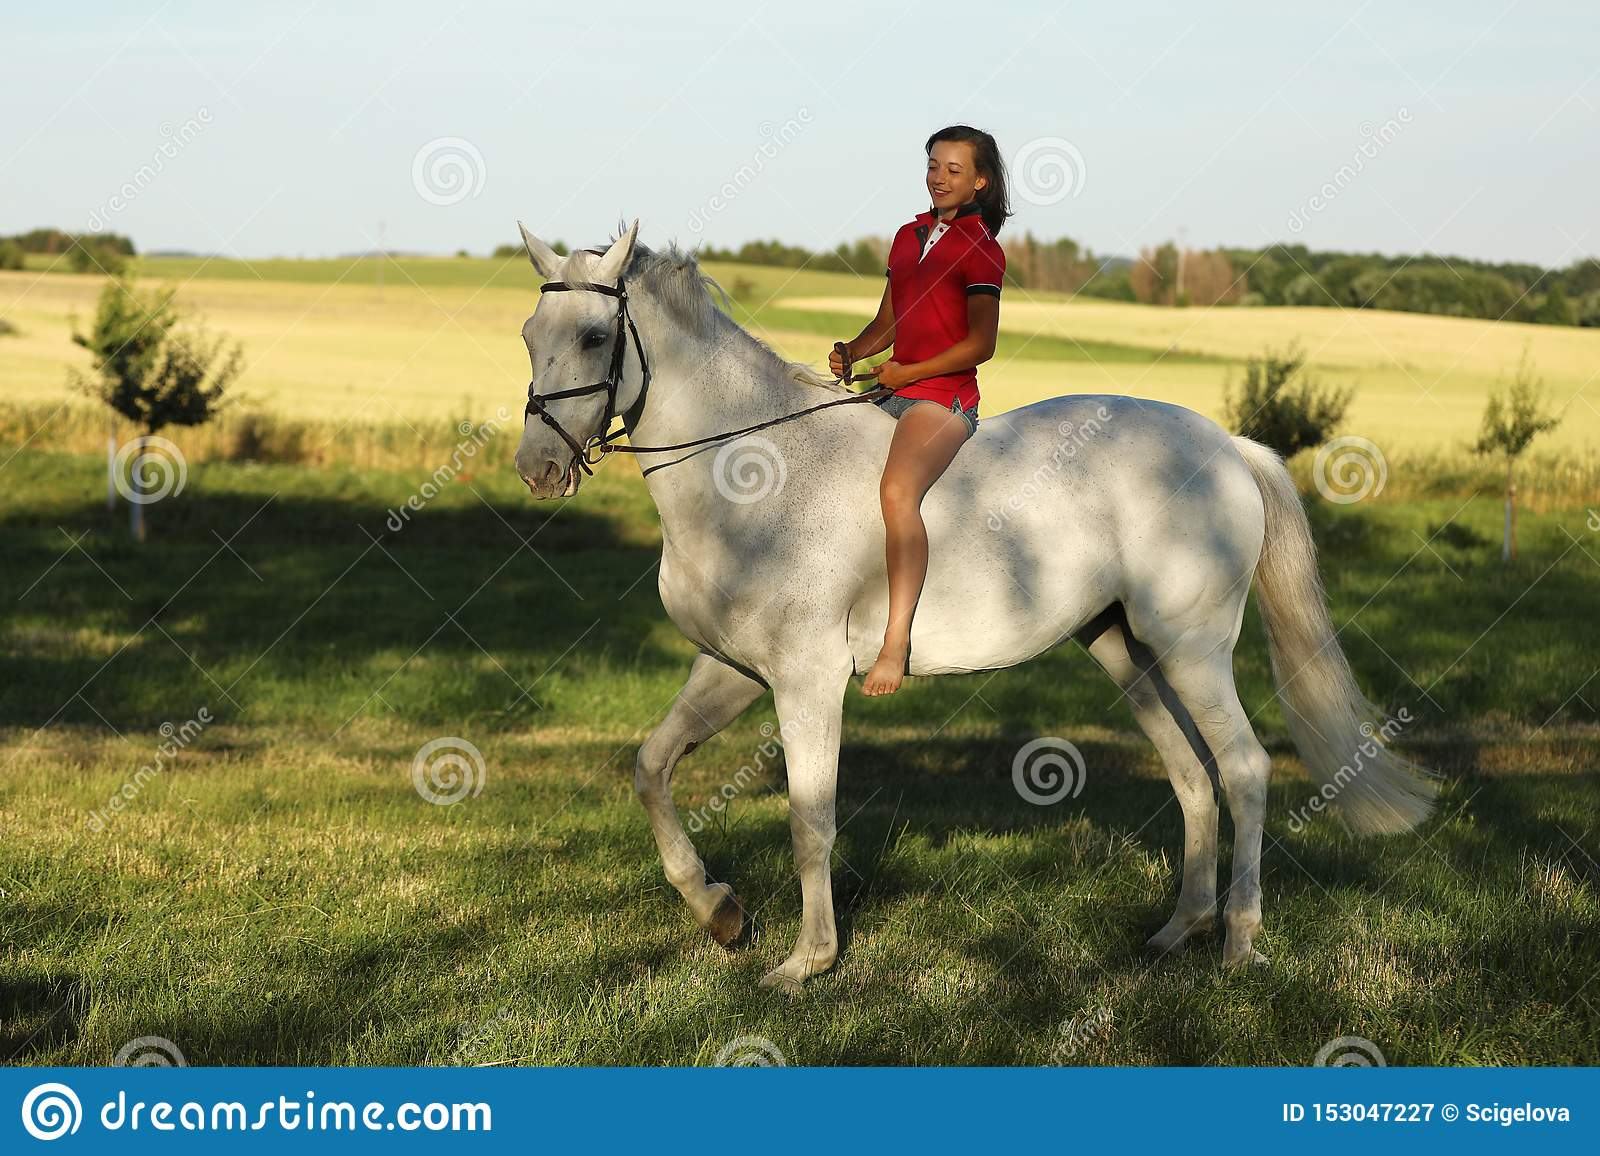 Young girl on roan horse walk on meadow in late afternoon without saddle, sunshine